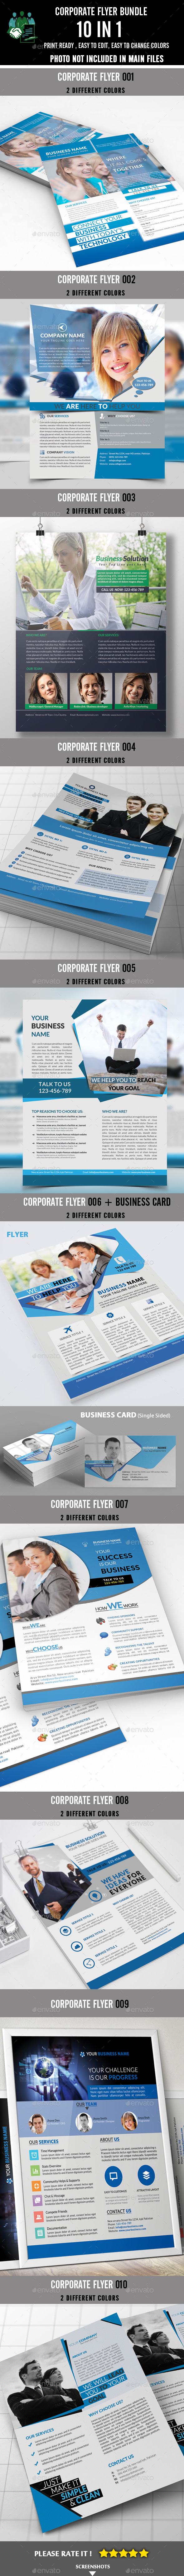 GraphicRiver Corporate Flyer Bundle 10 in 1 8871331